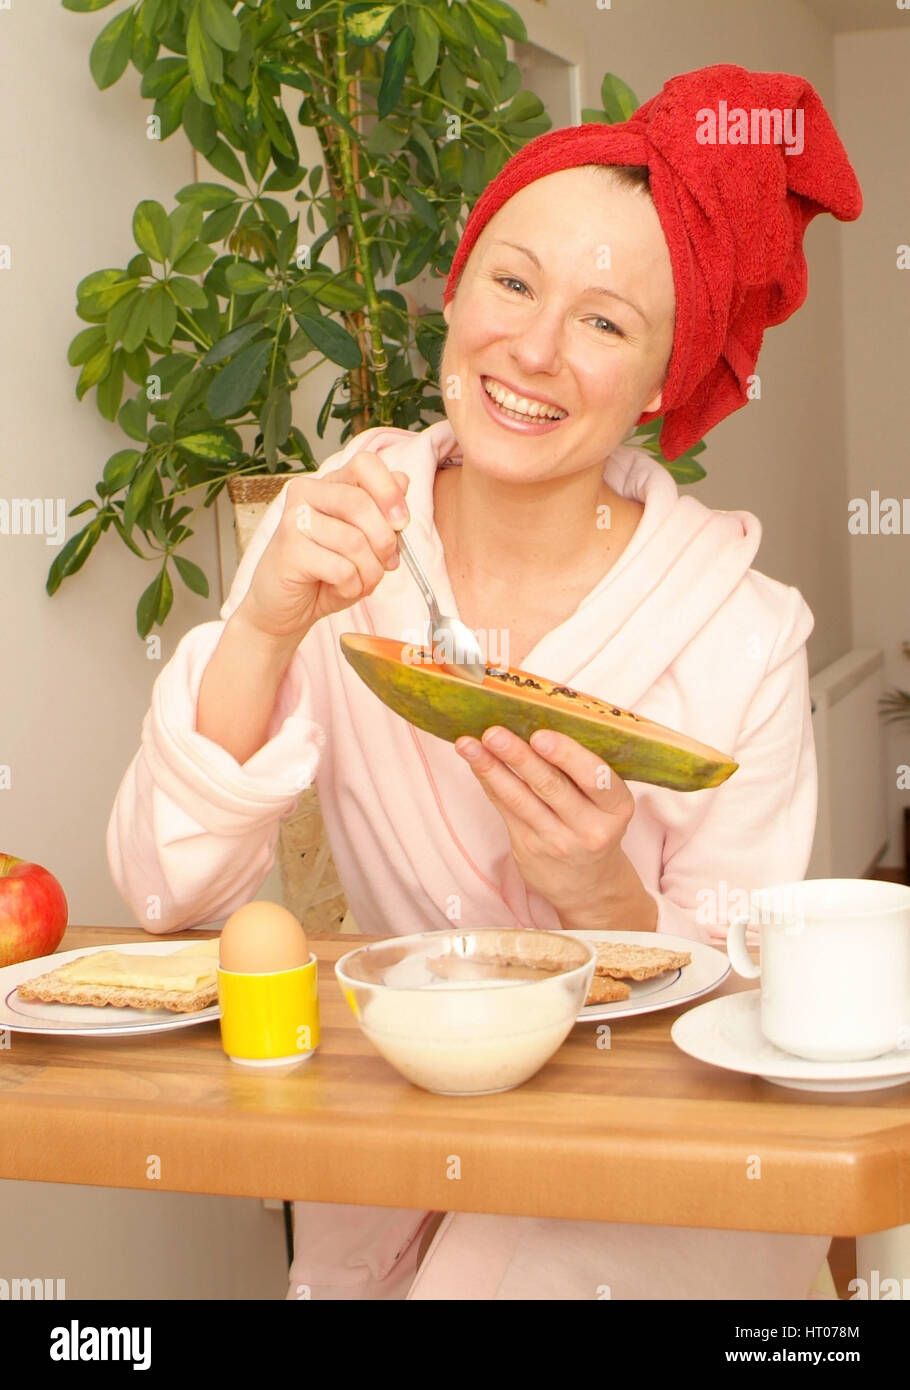 Junge Frau im Morgenmantel beim gesunden Fruehstueck - young woman in bathrobe at substantial breakfast - Stock Image